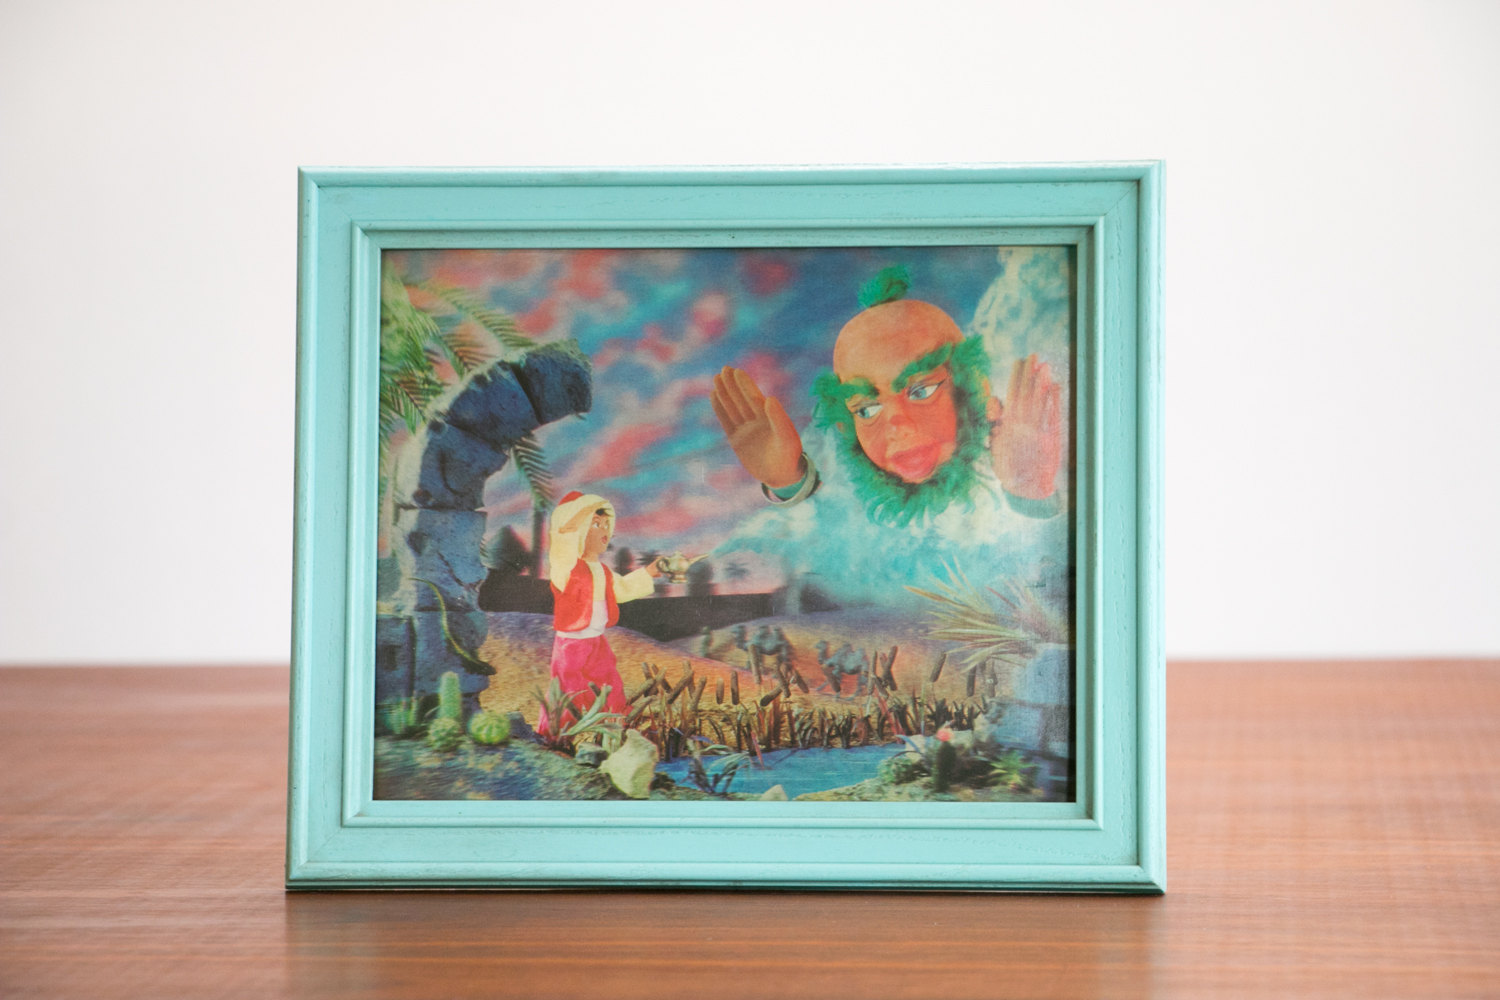 Vintage 1960's Lenticular Aladdin with Lamp and Genie 3D Effect Print with Baby Blue Plastic Frame // Retro, Mid Century, Disney, Movie